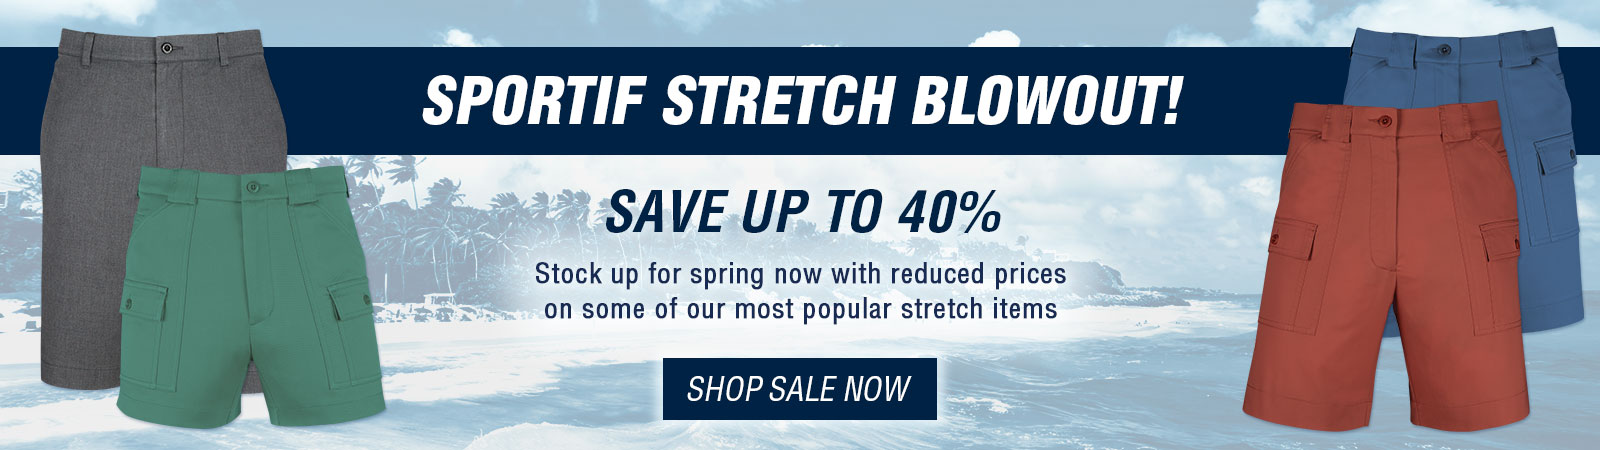 Sportif Stretch Blowout - Sale Stretch